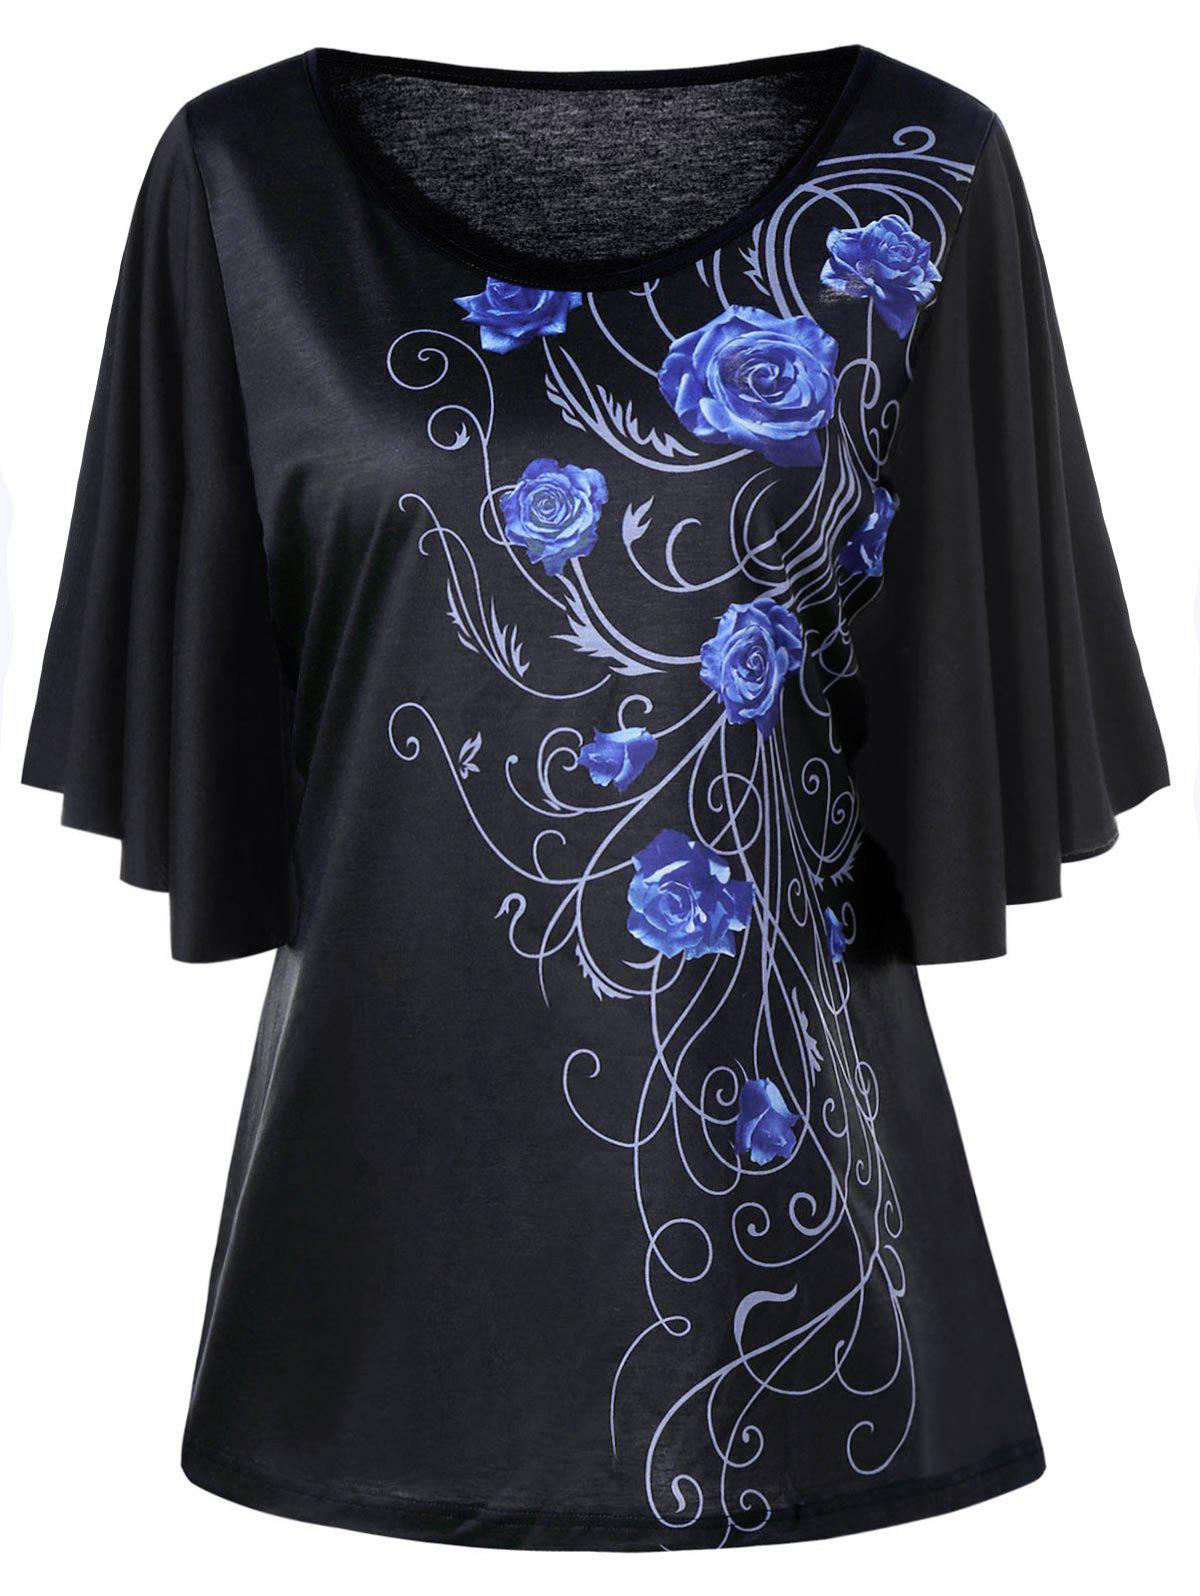 Plus Size Floral Drape Sleeve T-shirtWOMEN<br><br>Size: 3XL; Color: BLUE; Material: Polyester,Spandex; Shirt Length: Long; Sleeve Length: Short; Collar: Round Neck; Style: Casual; Season: Fall,Spring,Summer; Pattern Type: Floral; Weight: 0.2700kg; Package Contents: 1 x T-shirt;